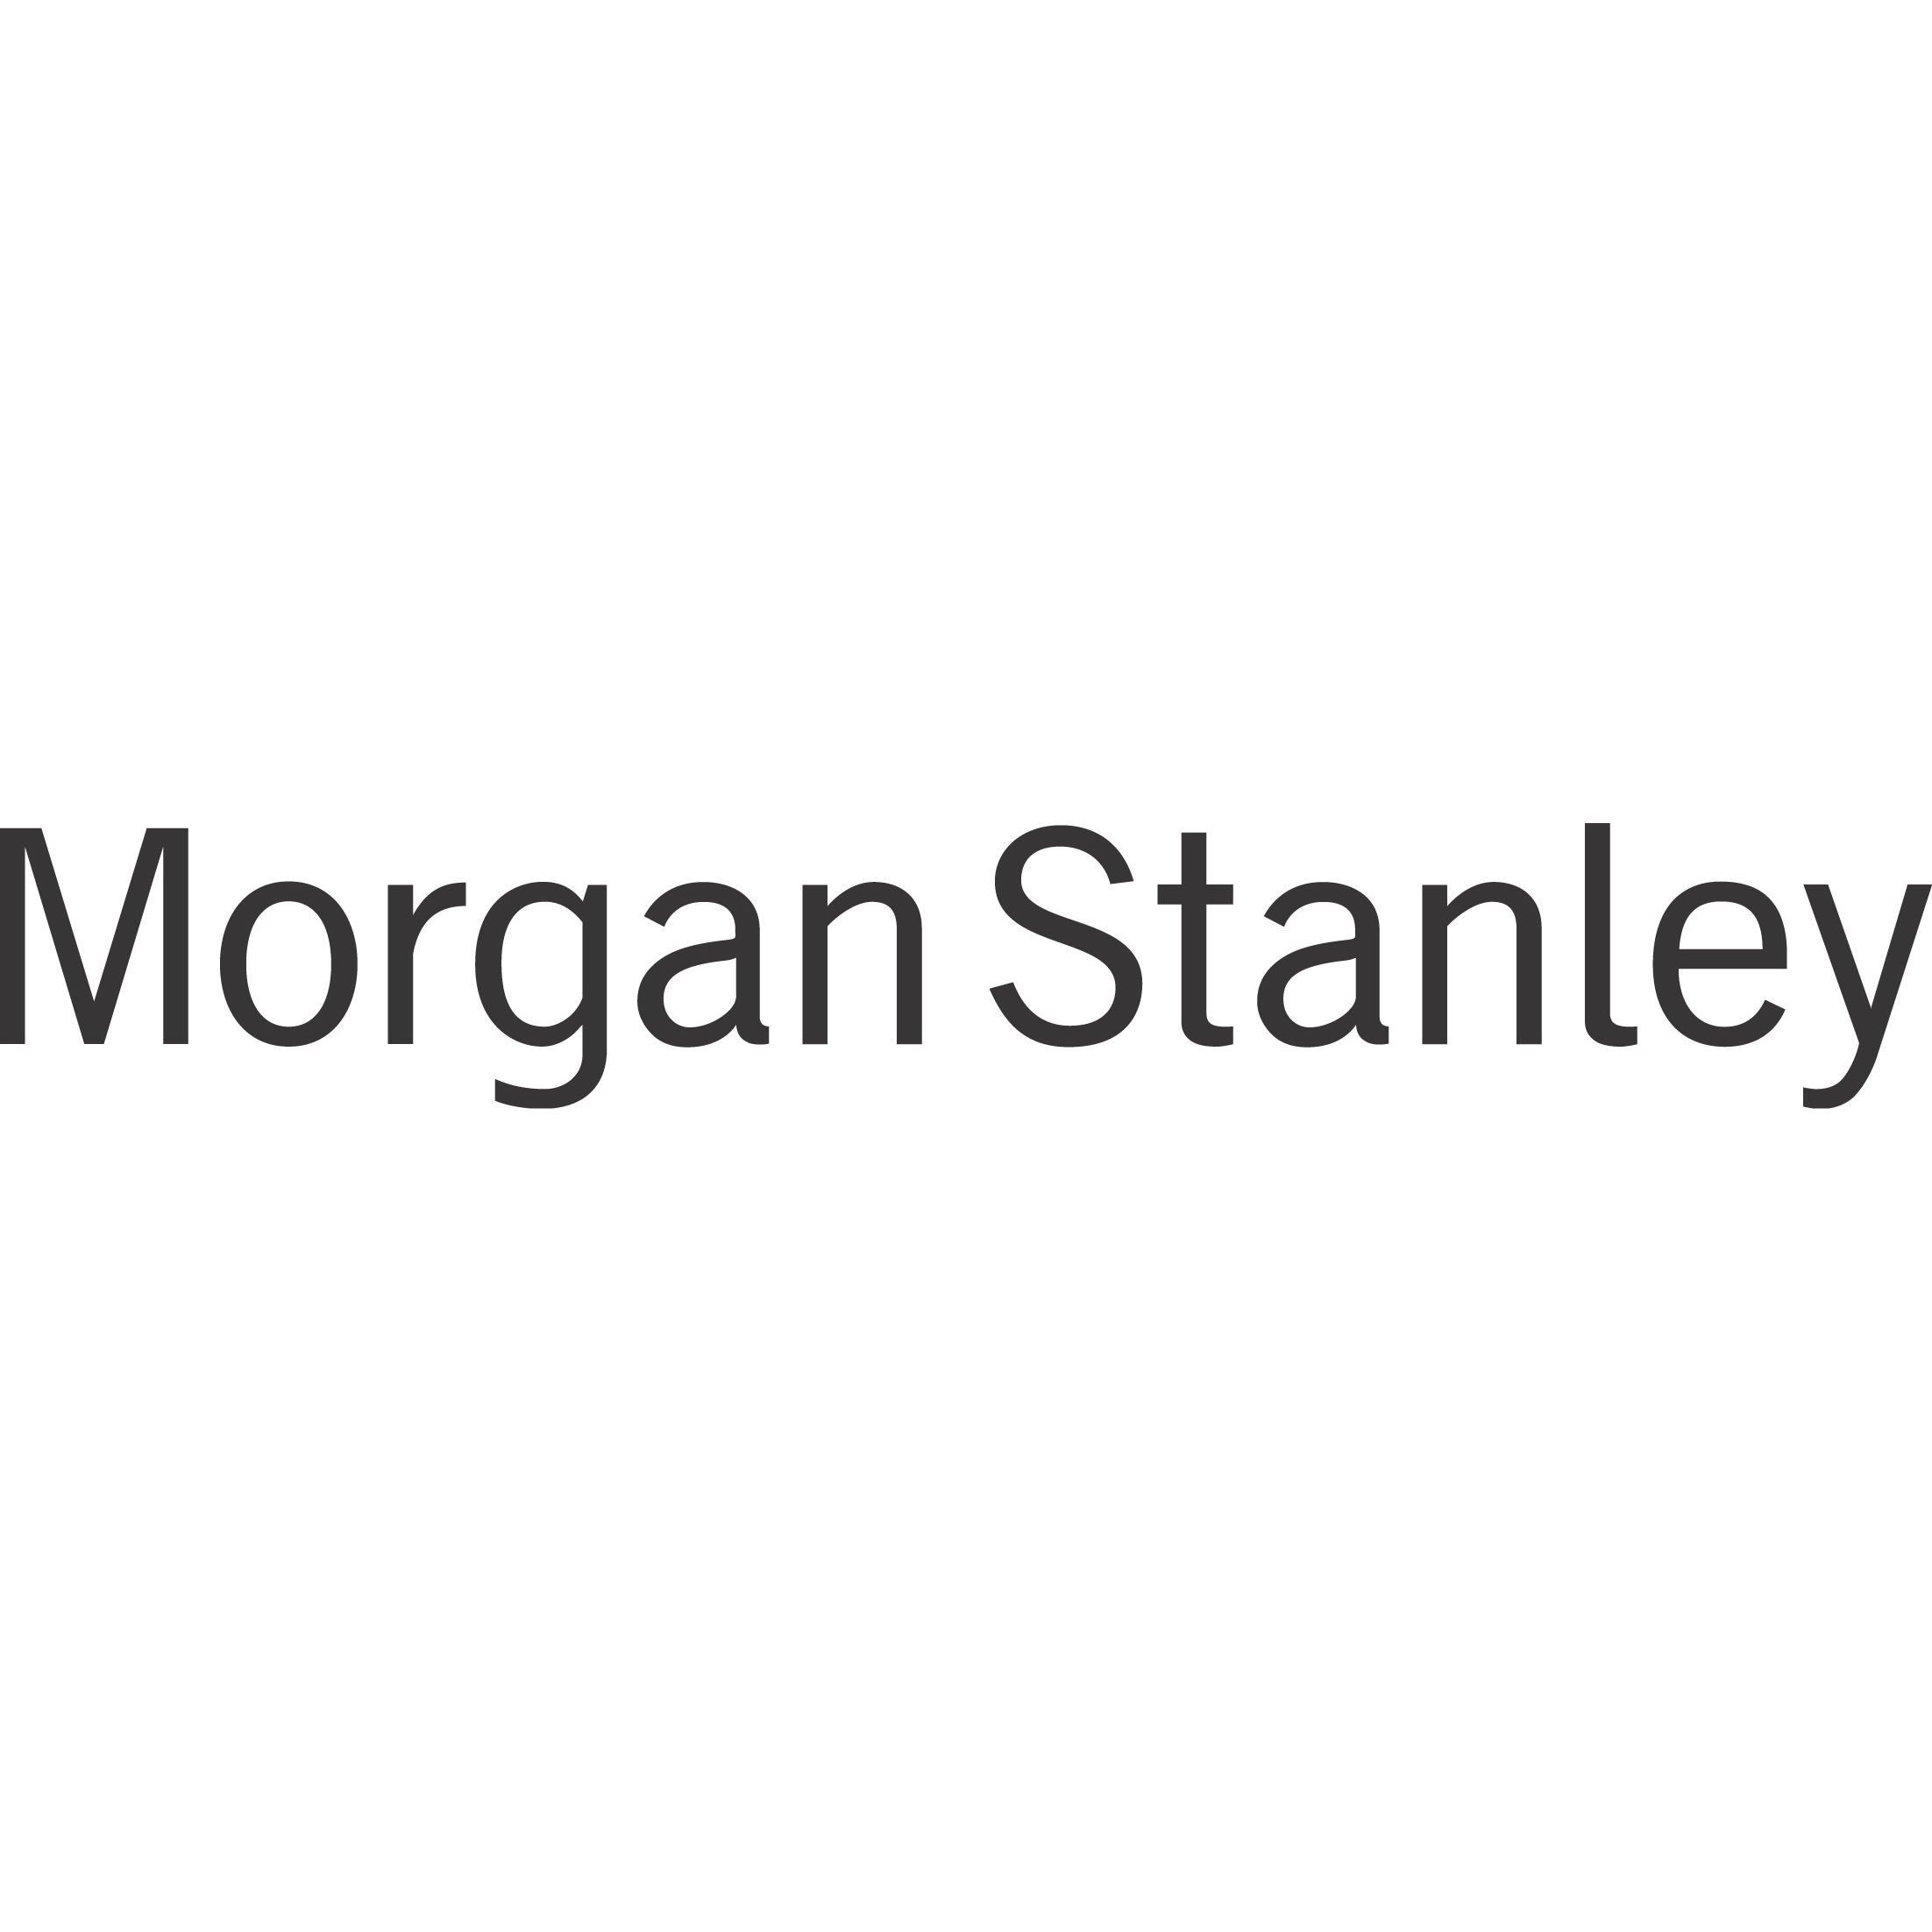 John M Duffy - Morgan Stanley | Financial Advisor in Indianapolis,Indiana